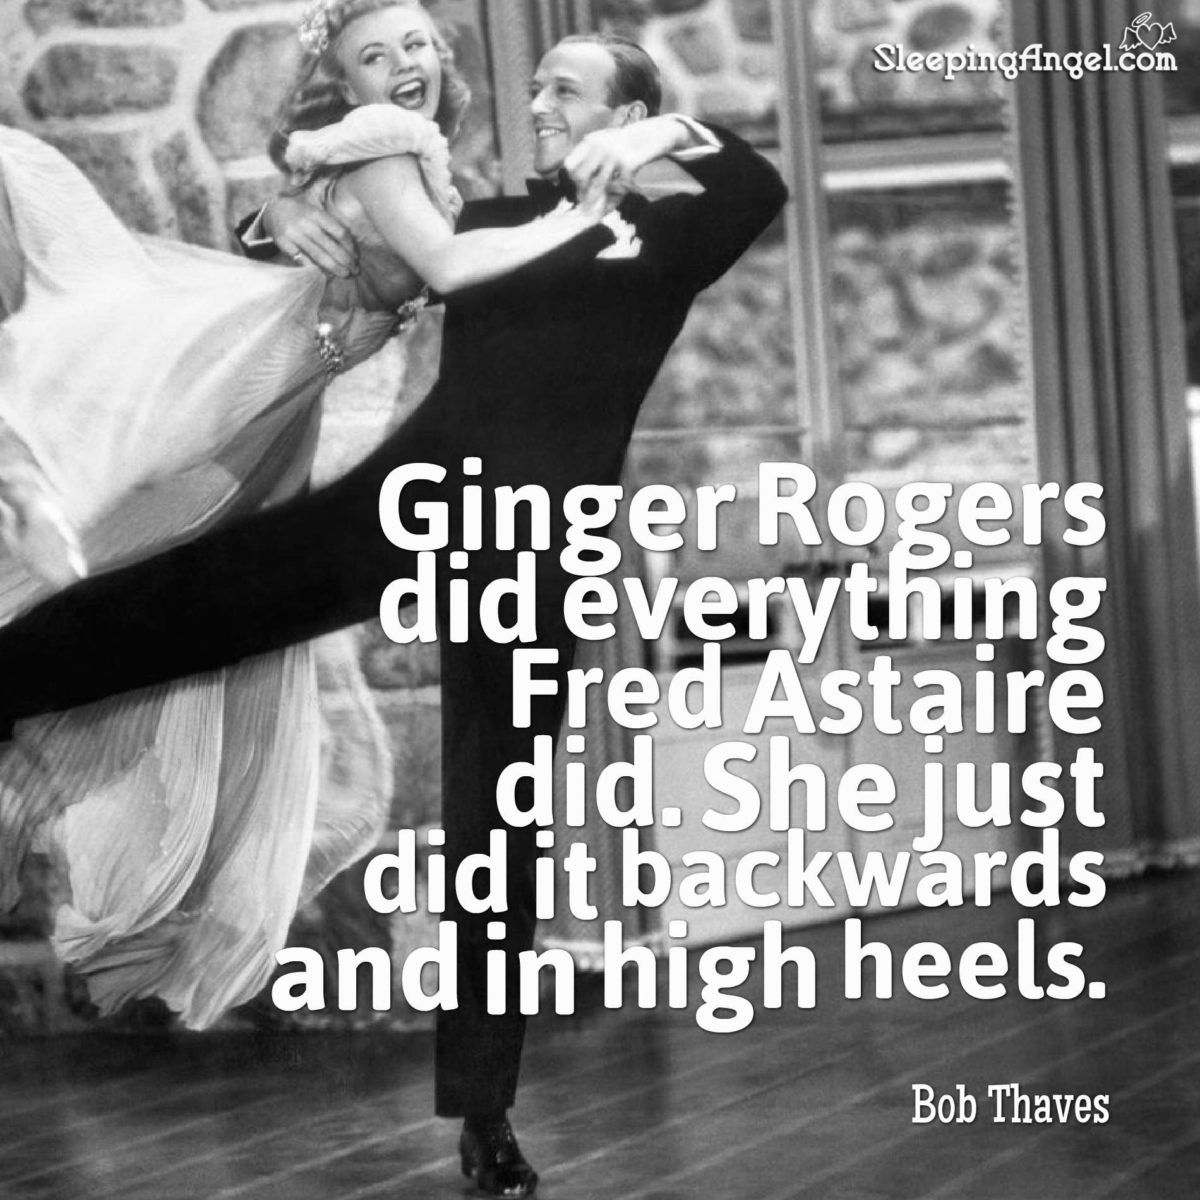 Ginger Rogers Did Everything Fred Astaire Did She Just Did It Backwards And In High Heels Bob Thaves Ginger Rogers Ginger Rogers Quotes Fred Astaire